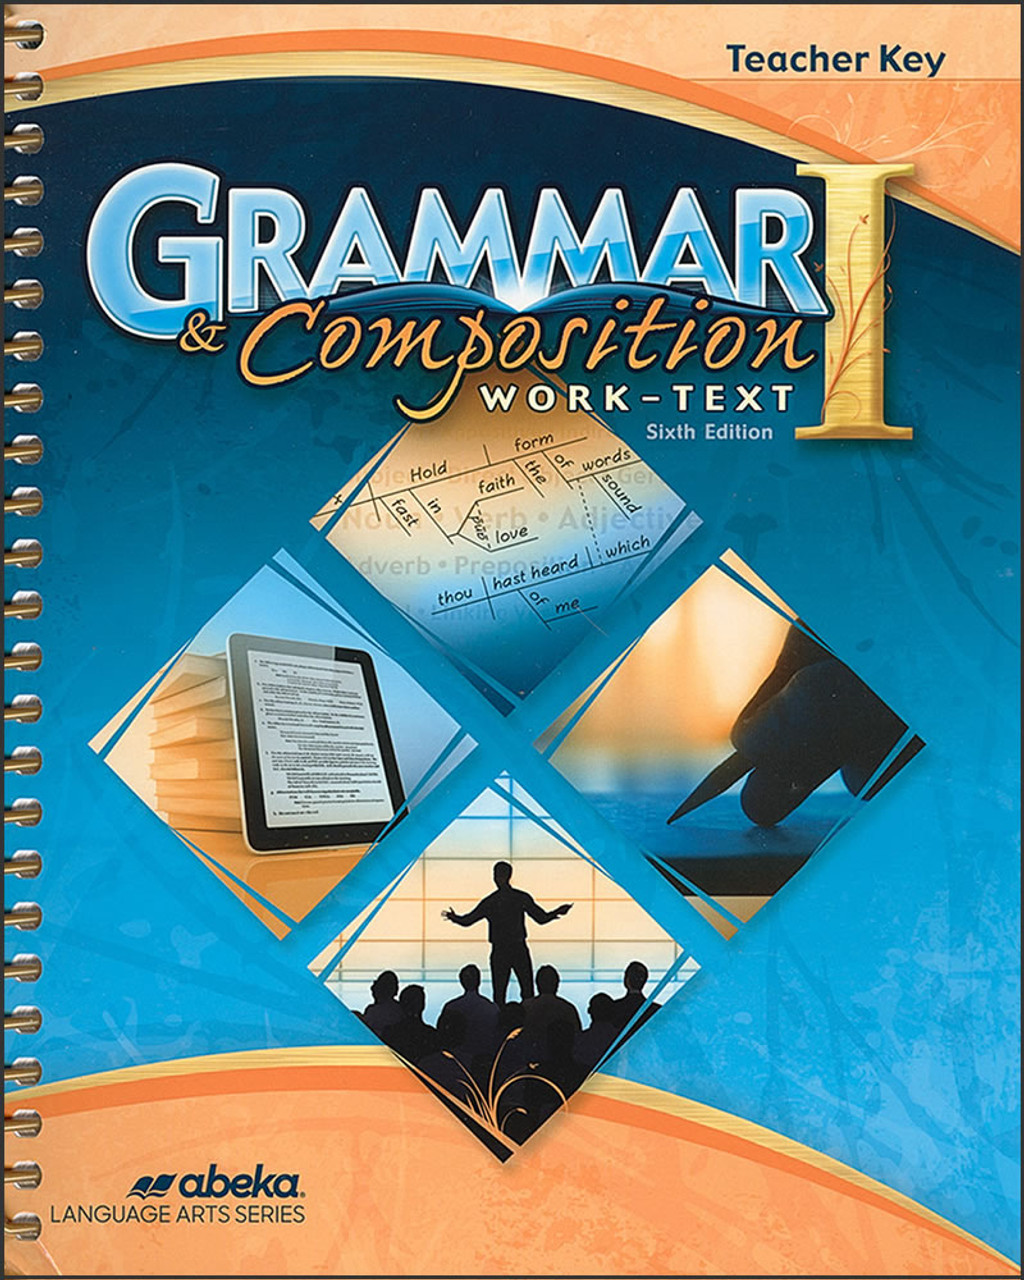 Grammar and Composition I, 6th edition - Teacher Key